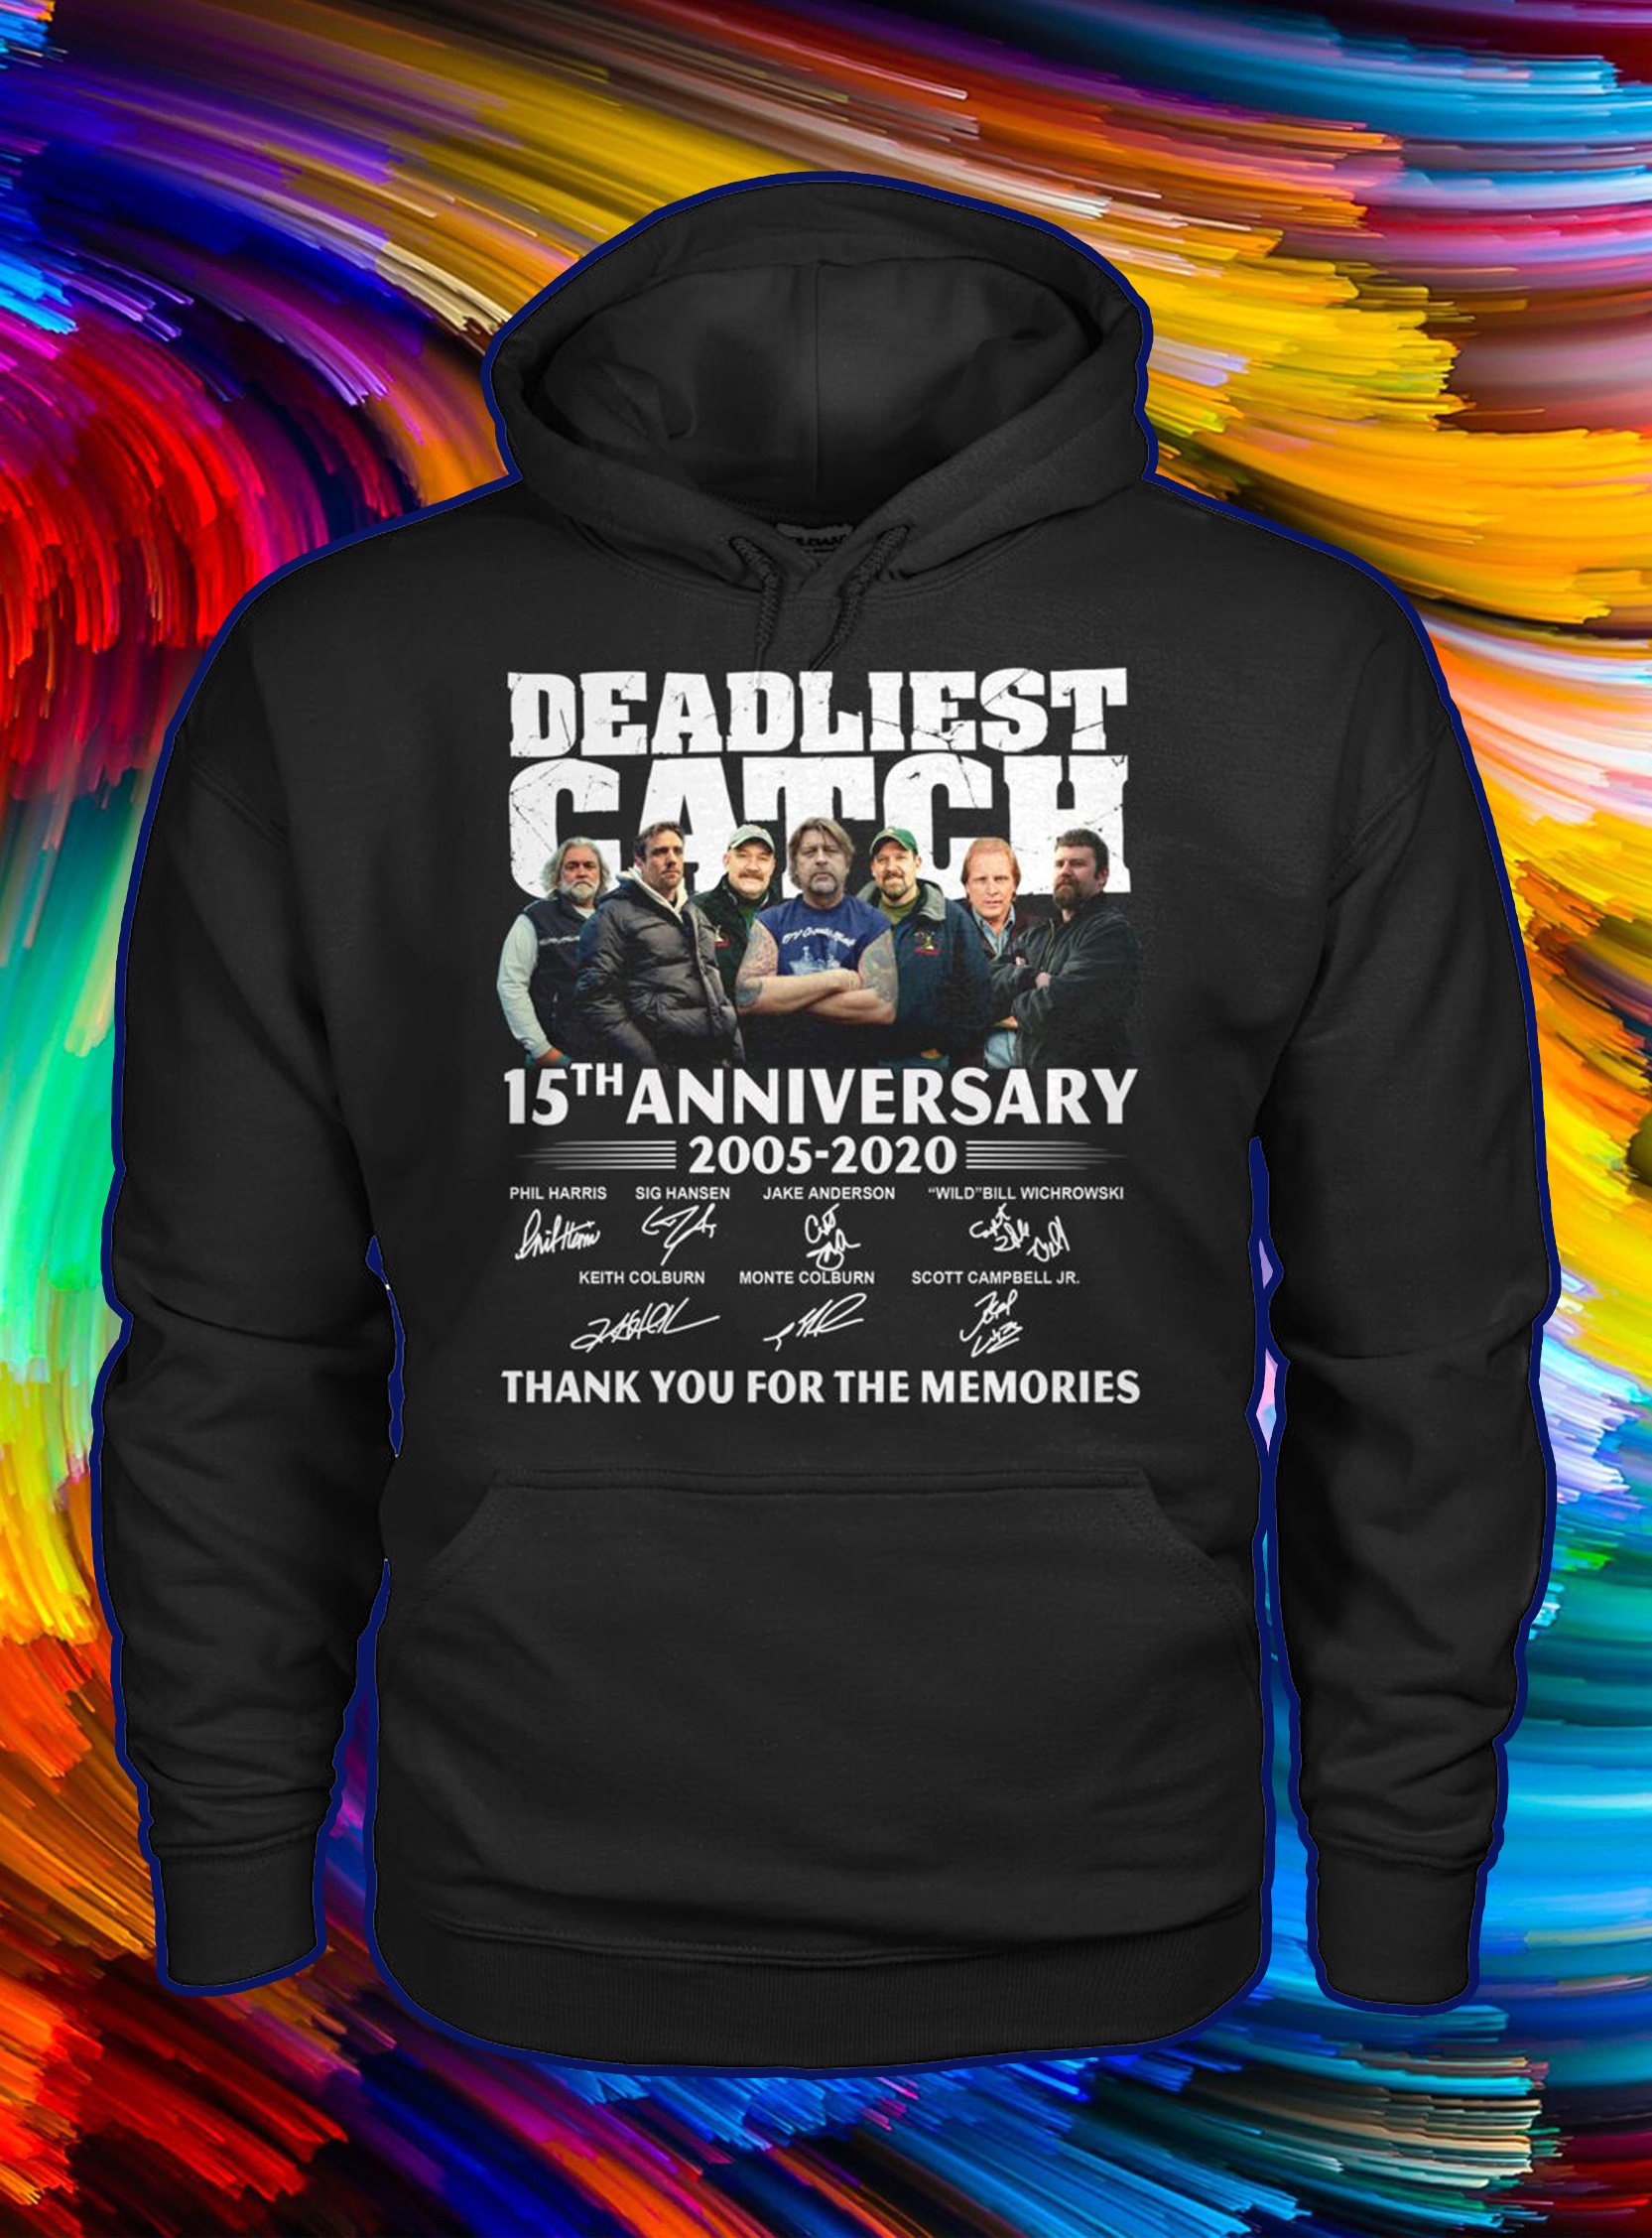 Deadliest catch 15th anniversary signature thank you for the memories hoodie